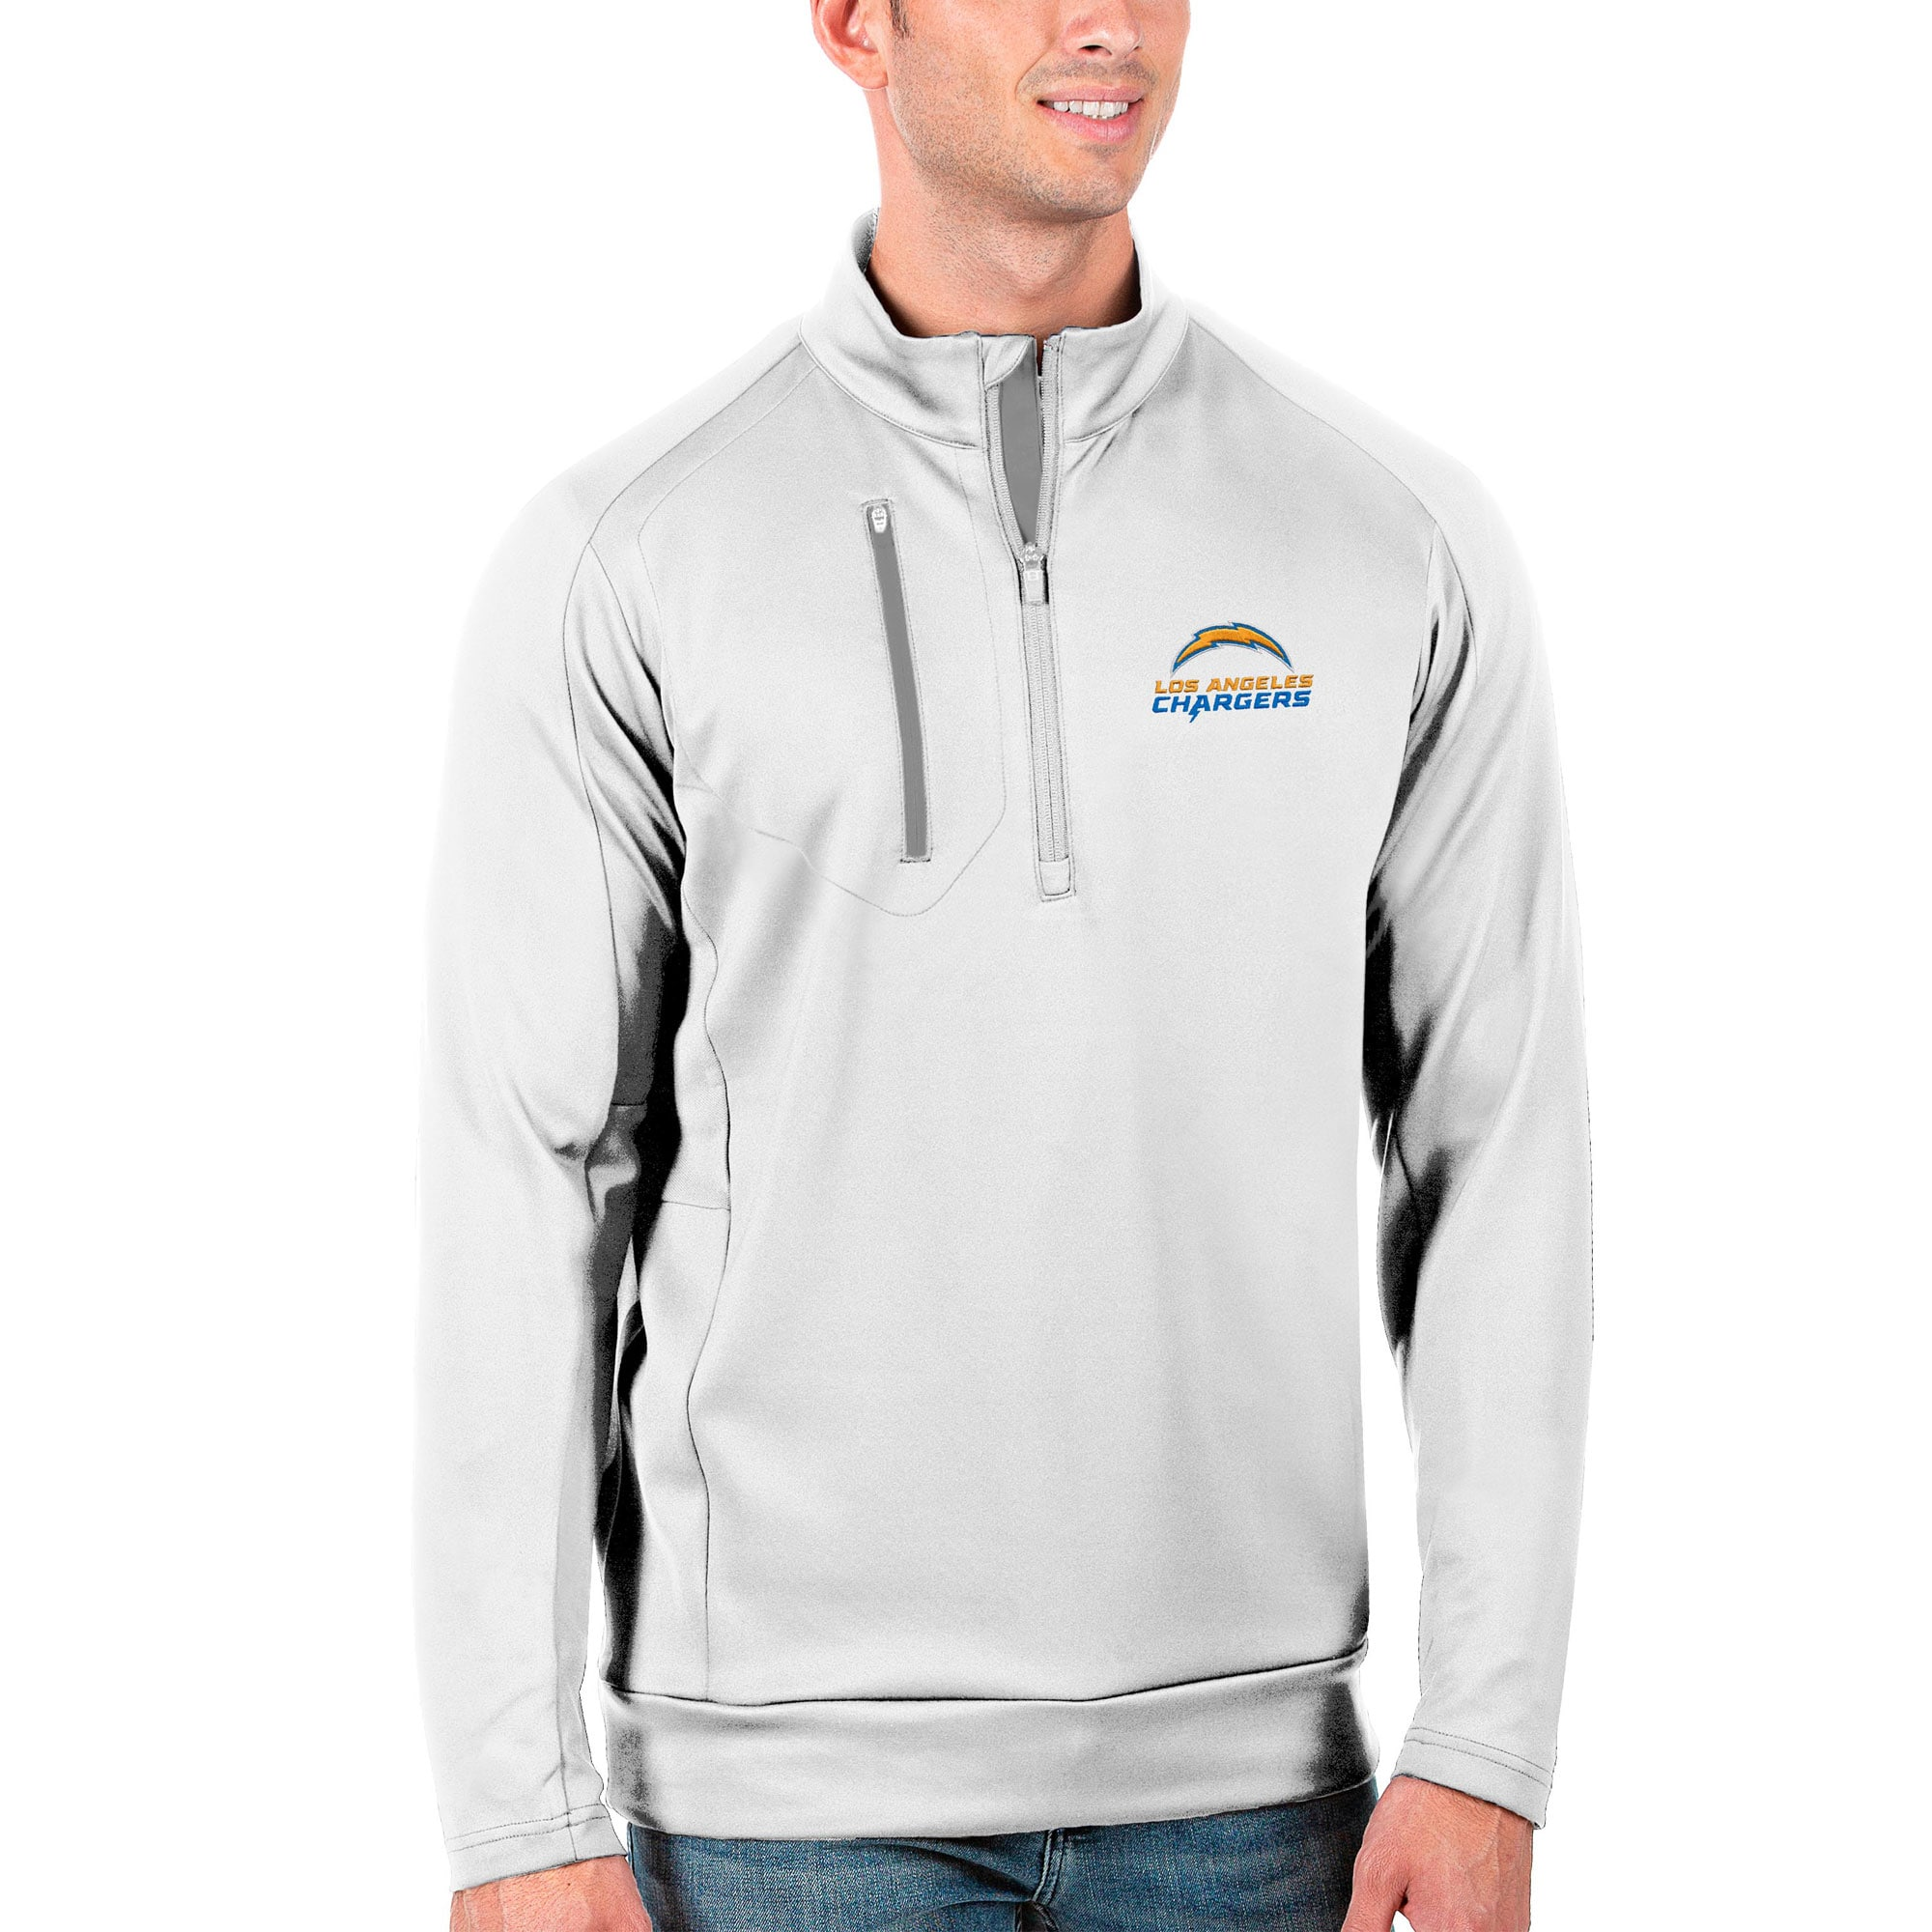 Los Angeles Chargers Antigua Generation Quarter-Zip Pullover Jacket - White/Silver